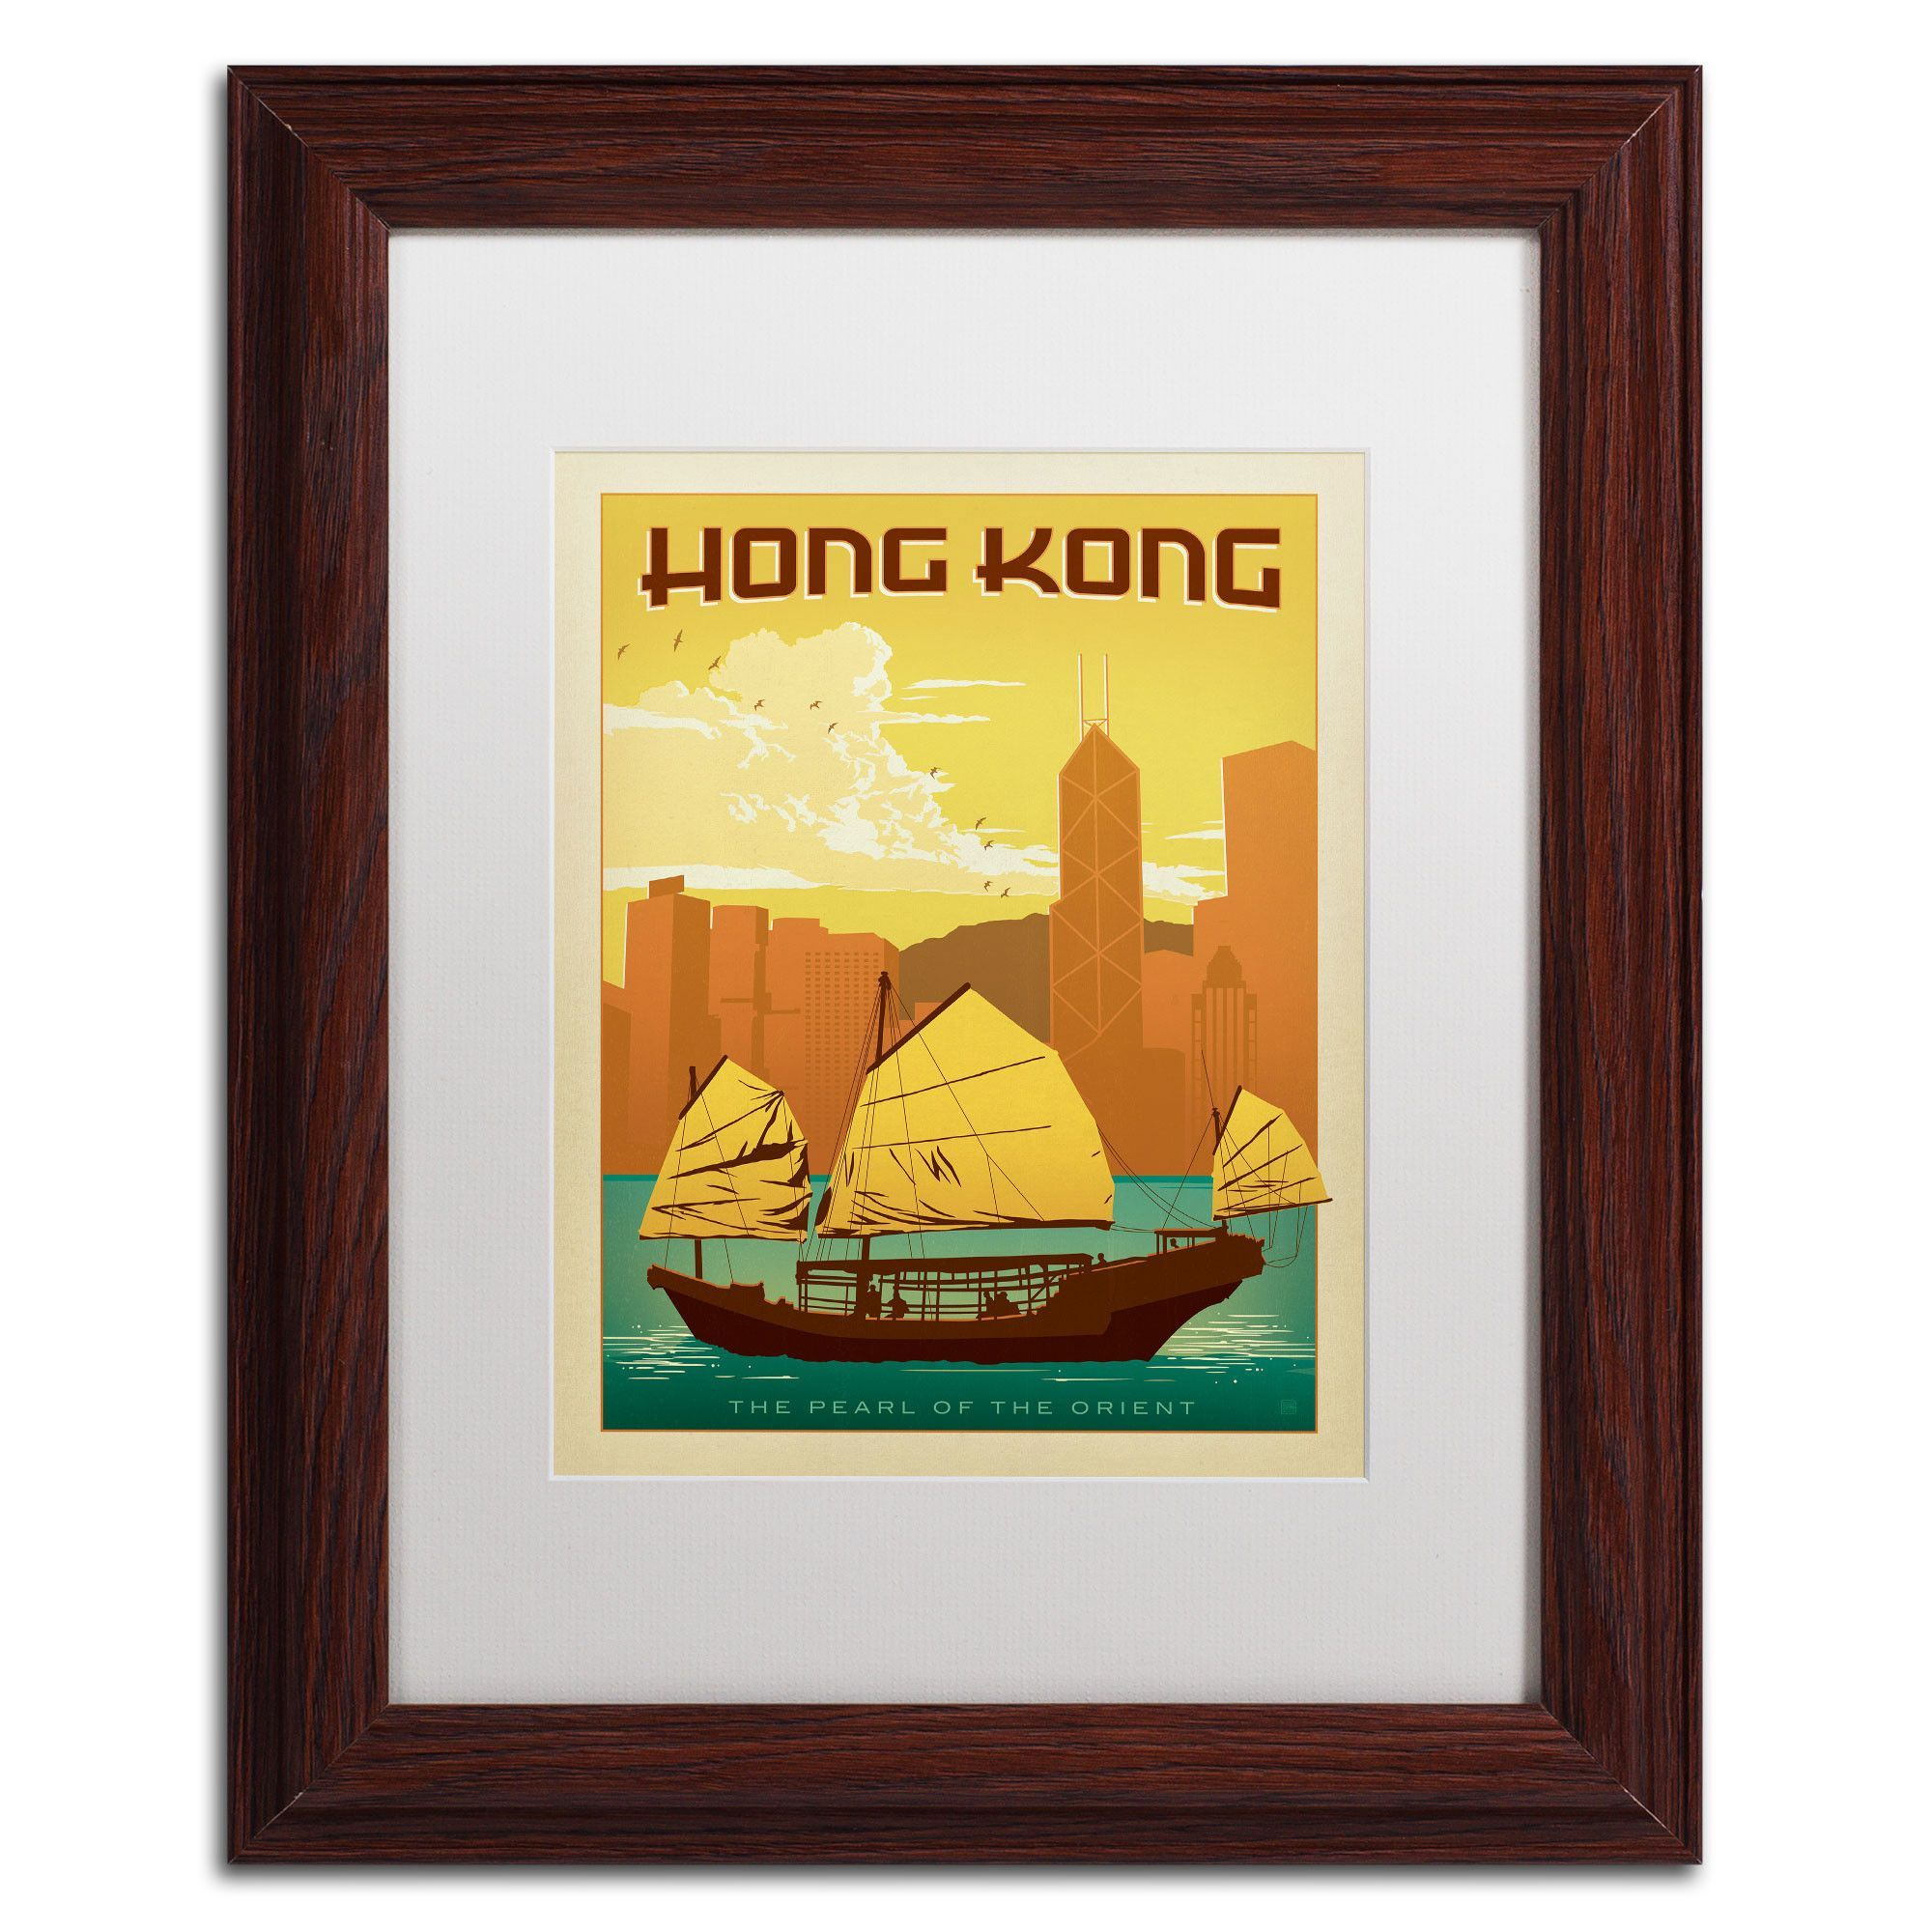 'Hong Kong' by Anderson Design Group Framed Graphic Art